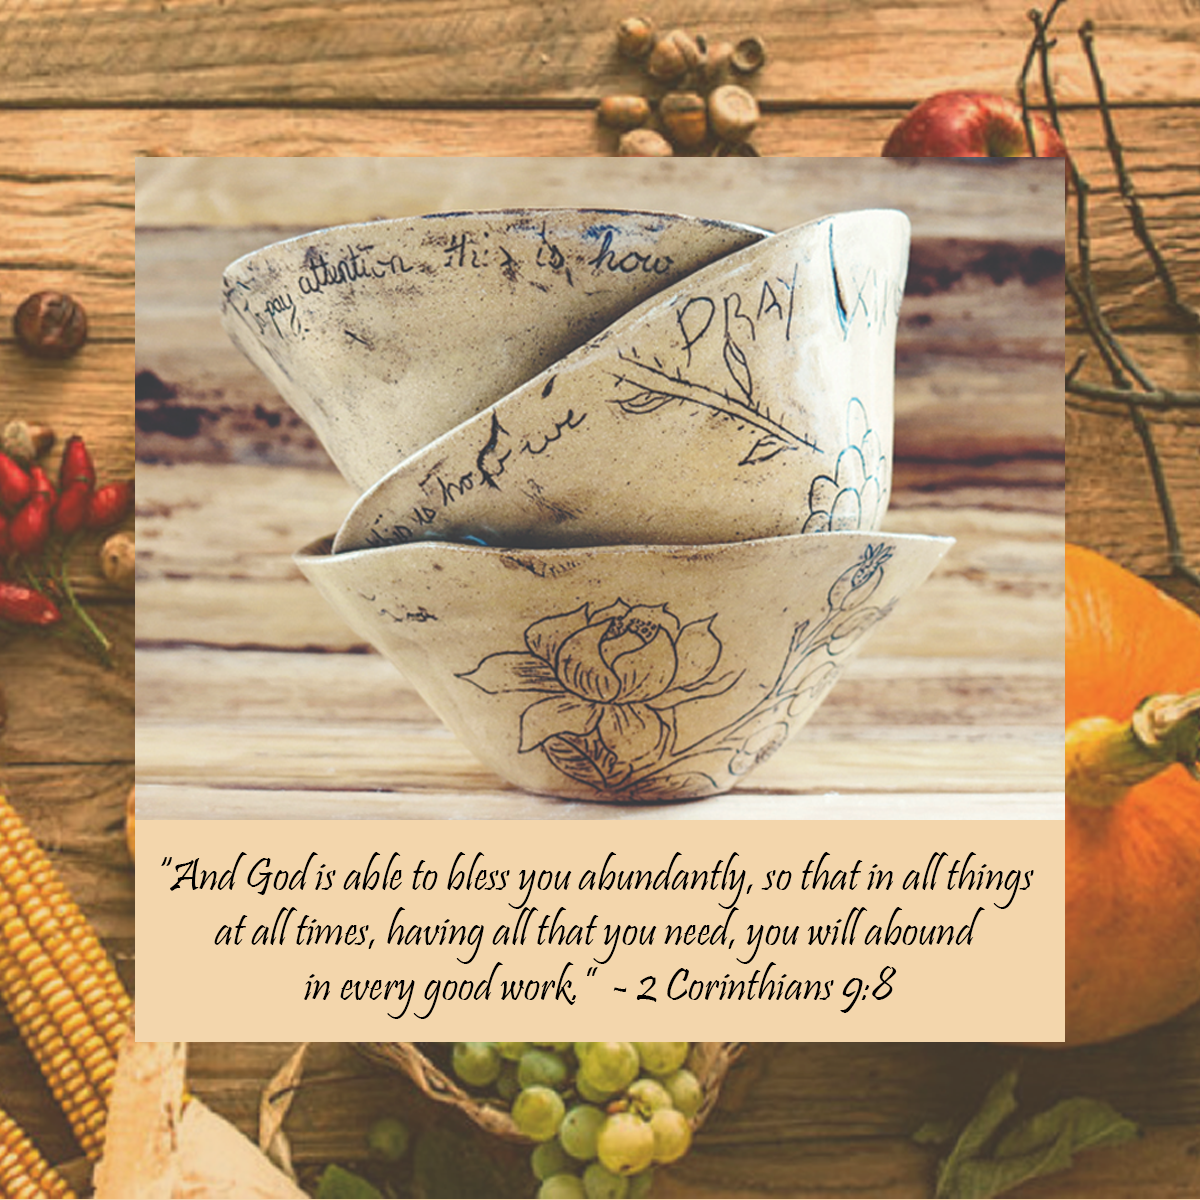 Harvest Blessing Bowls - A Pottery Craft - Bring a bowl to use as your model - no larger than 10 inches acrossDessert and coffee will be providedWhen: Friday October 26th from 7-9 pmANDFriday Nov. 2nd from 7-9 pmWhere: Knowlton Presbyterian Church (3 Knowlton Rd)Cost:$15